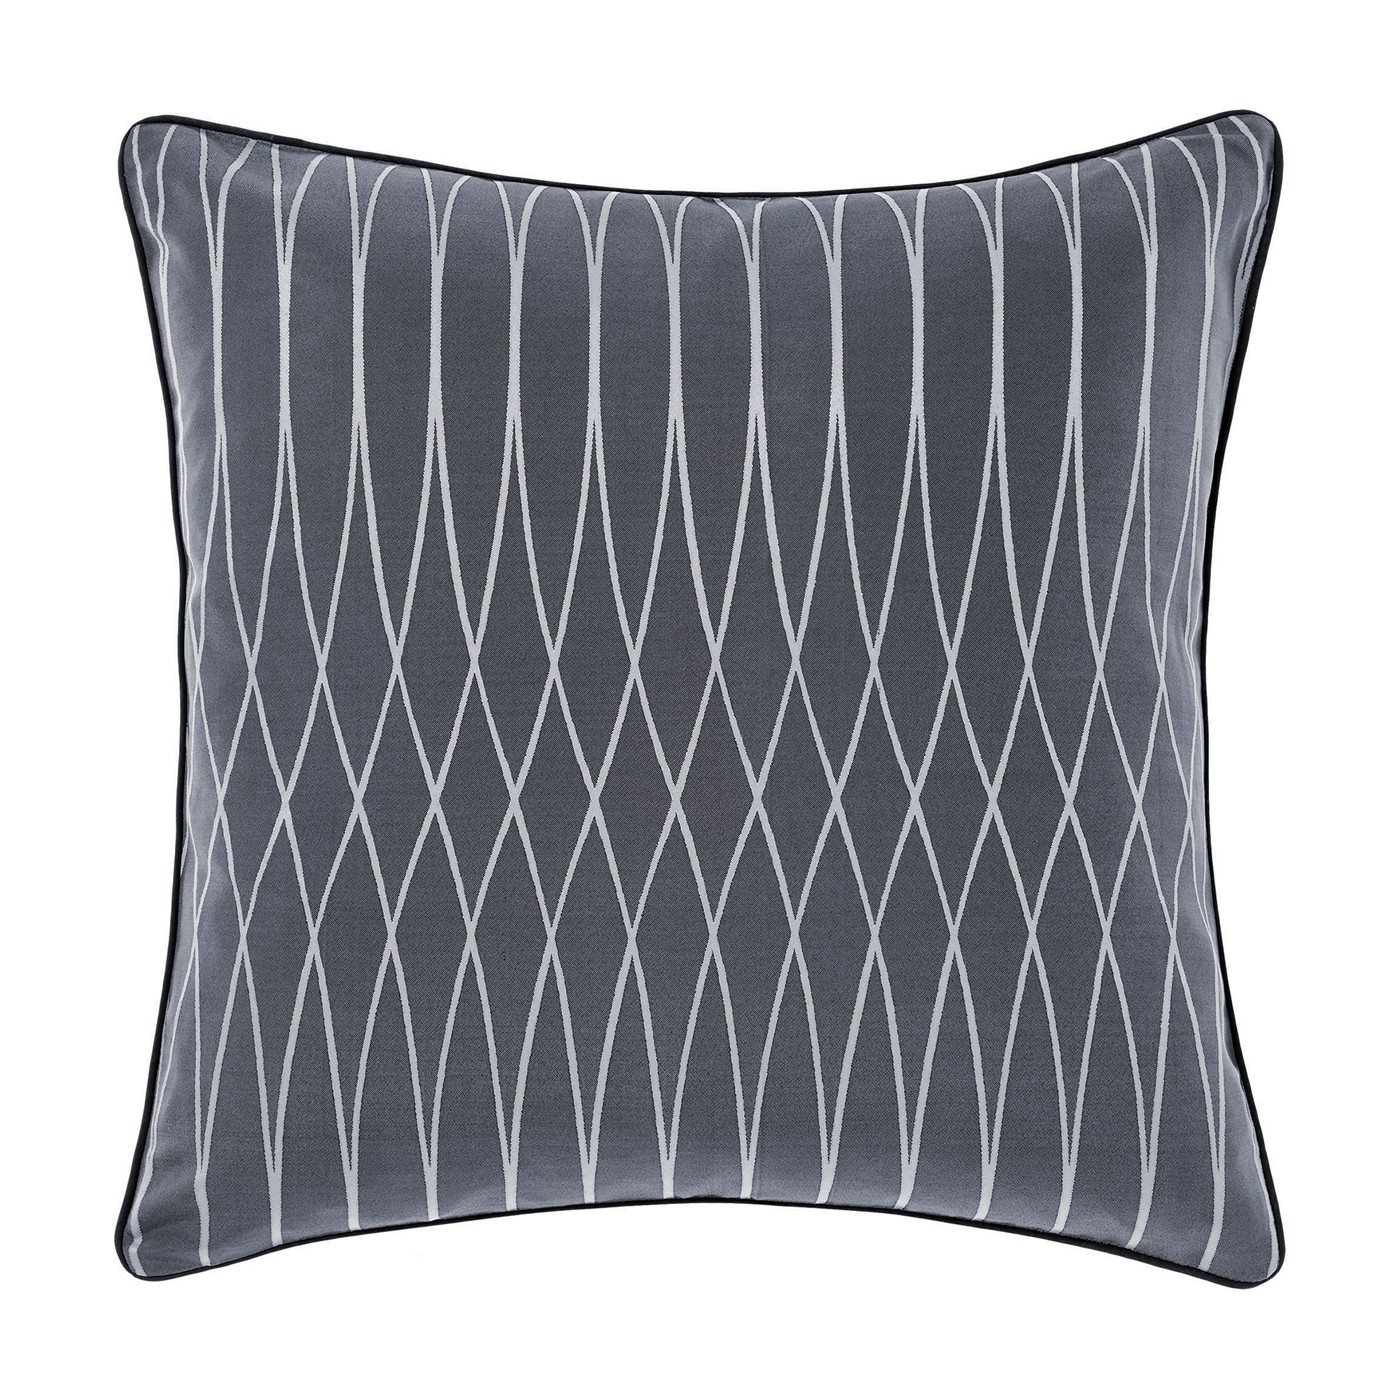 The Home Furnishings Company Northbrook Indigo Duvet Cover and Matching Pillow Cases